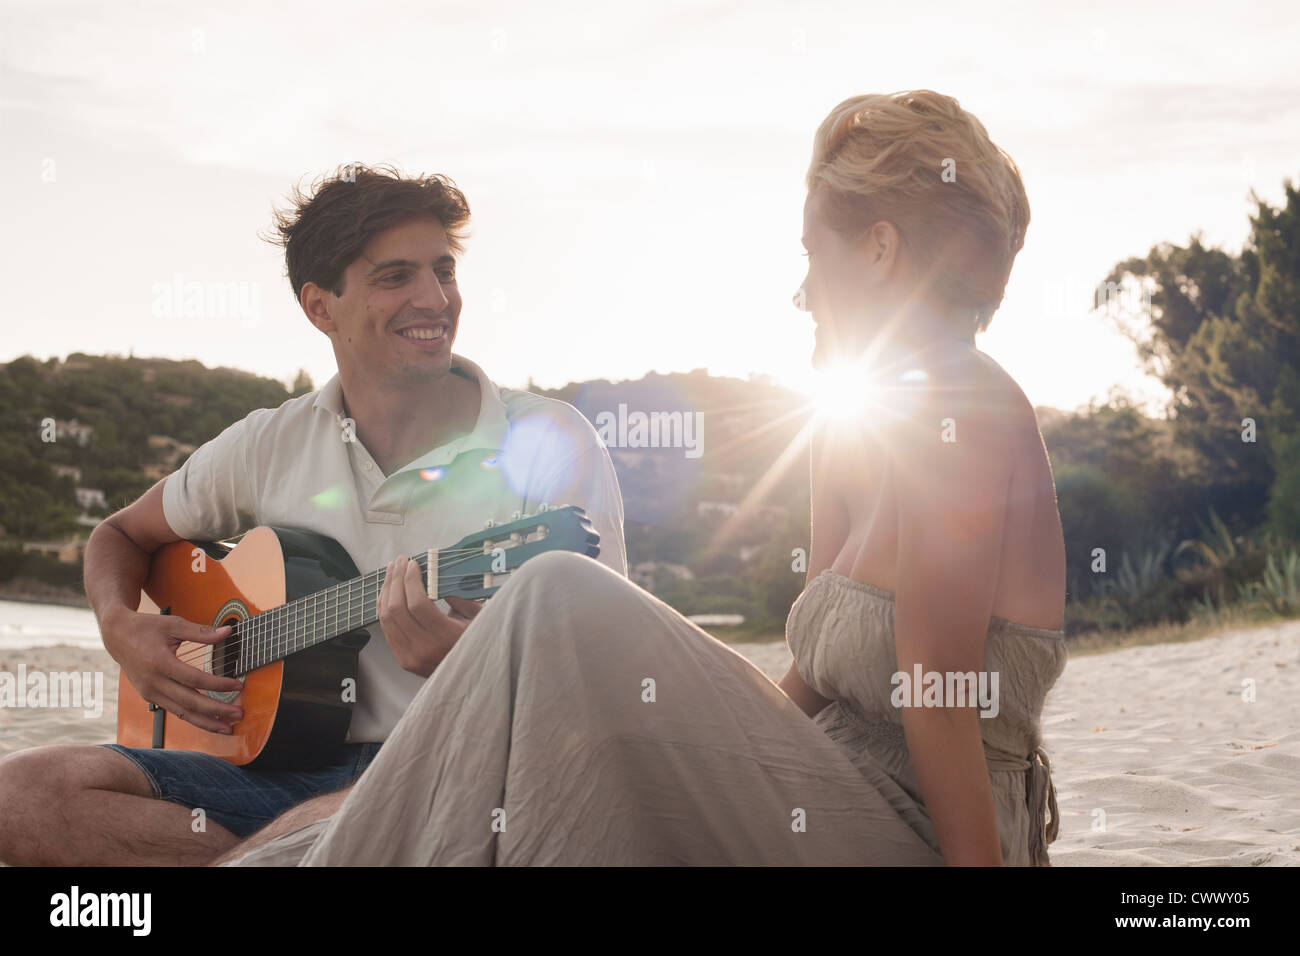 Man playing guitar for girlfriend - Stock Image